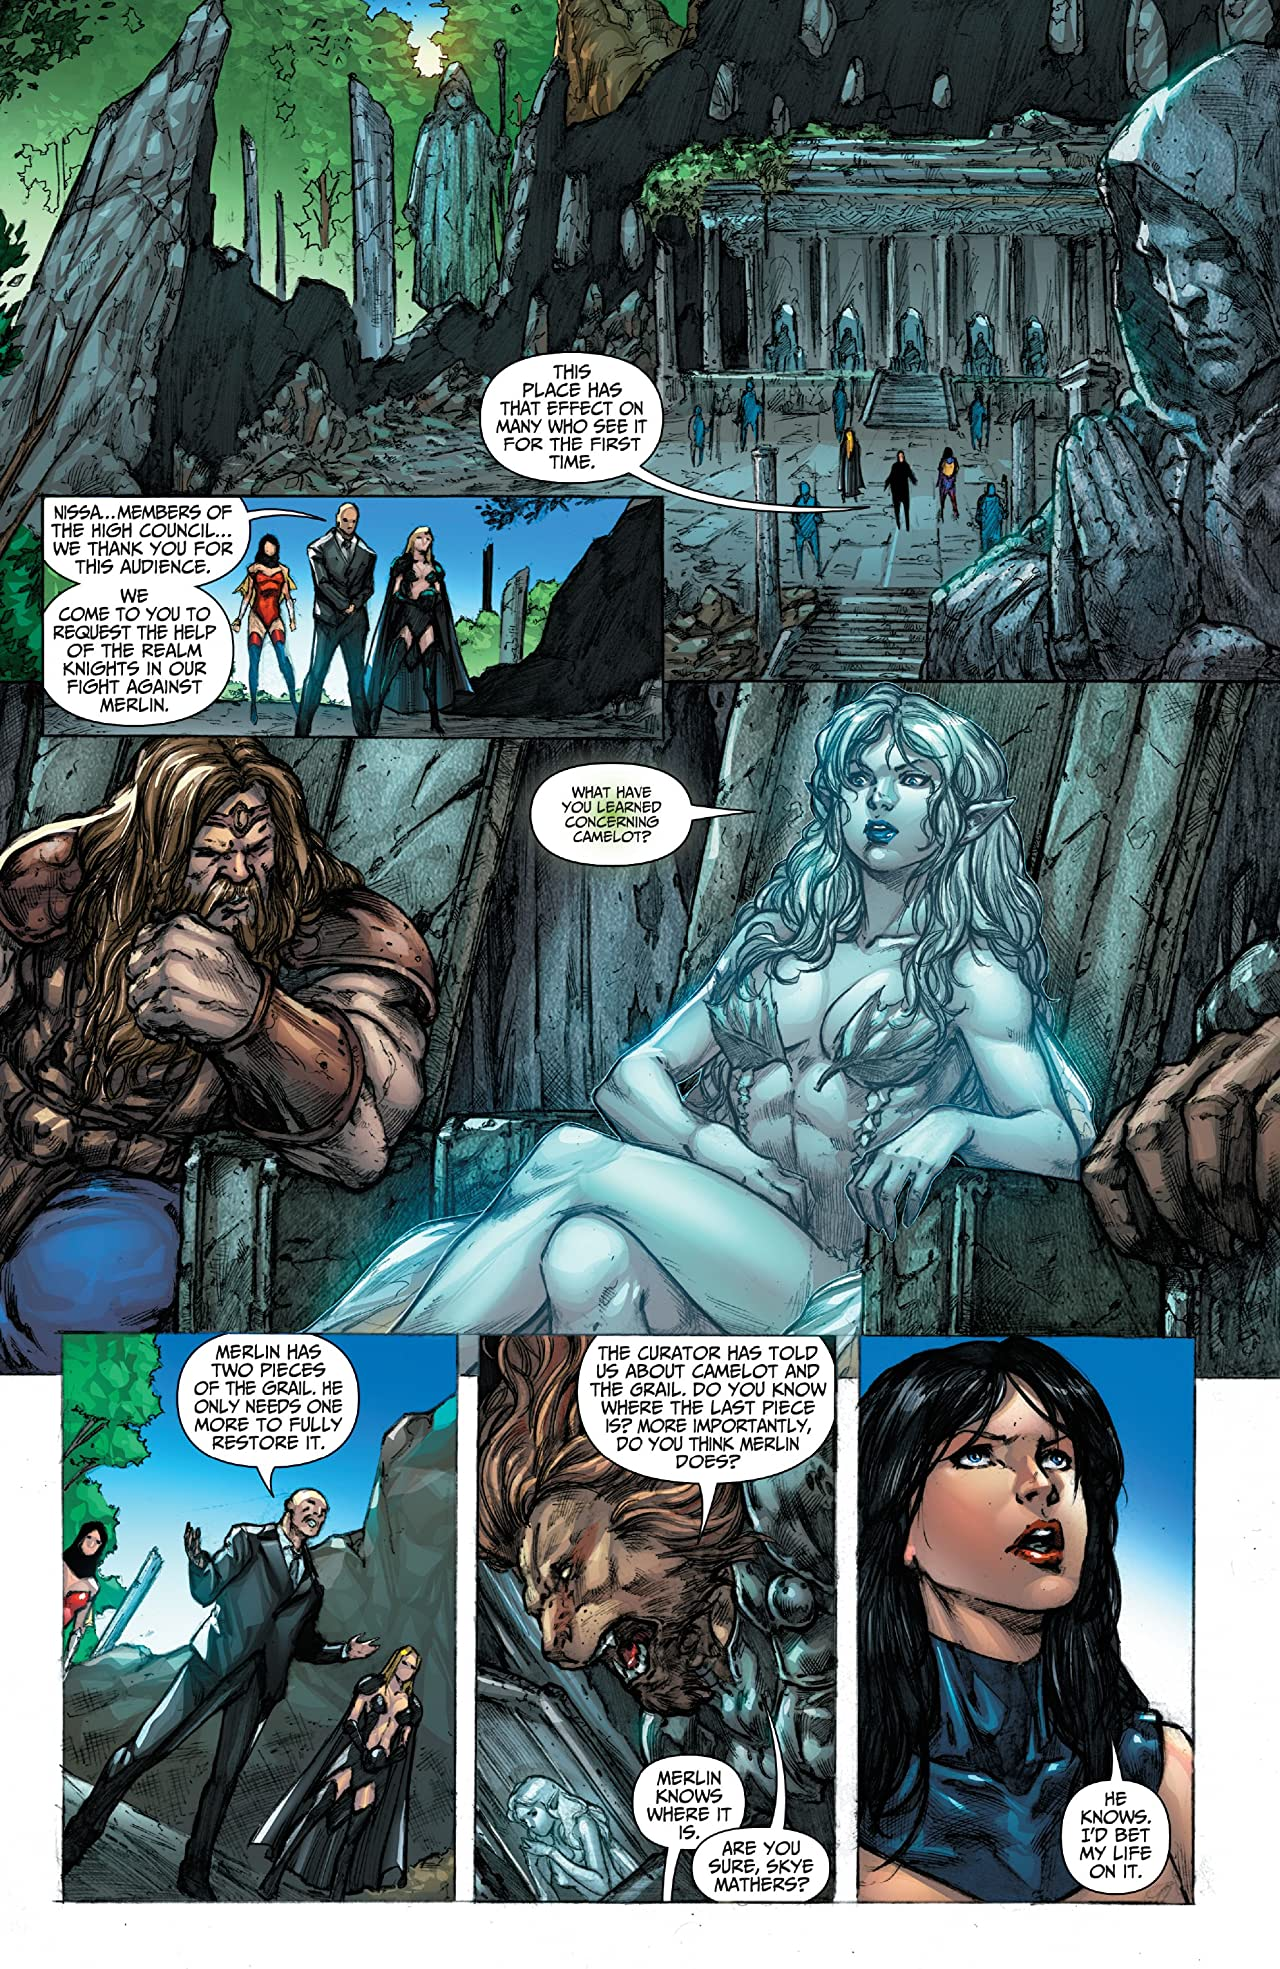 Grimm Fairy Tales Vol. 2 #24: Age of Camelot